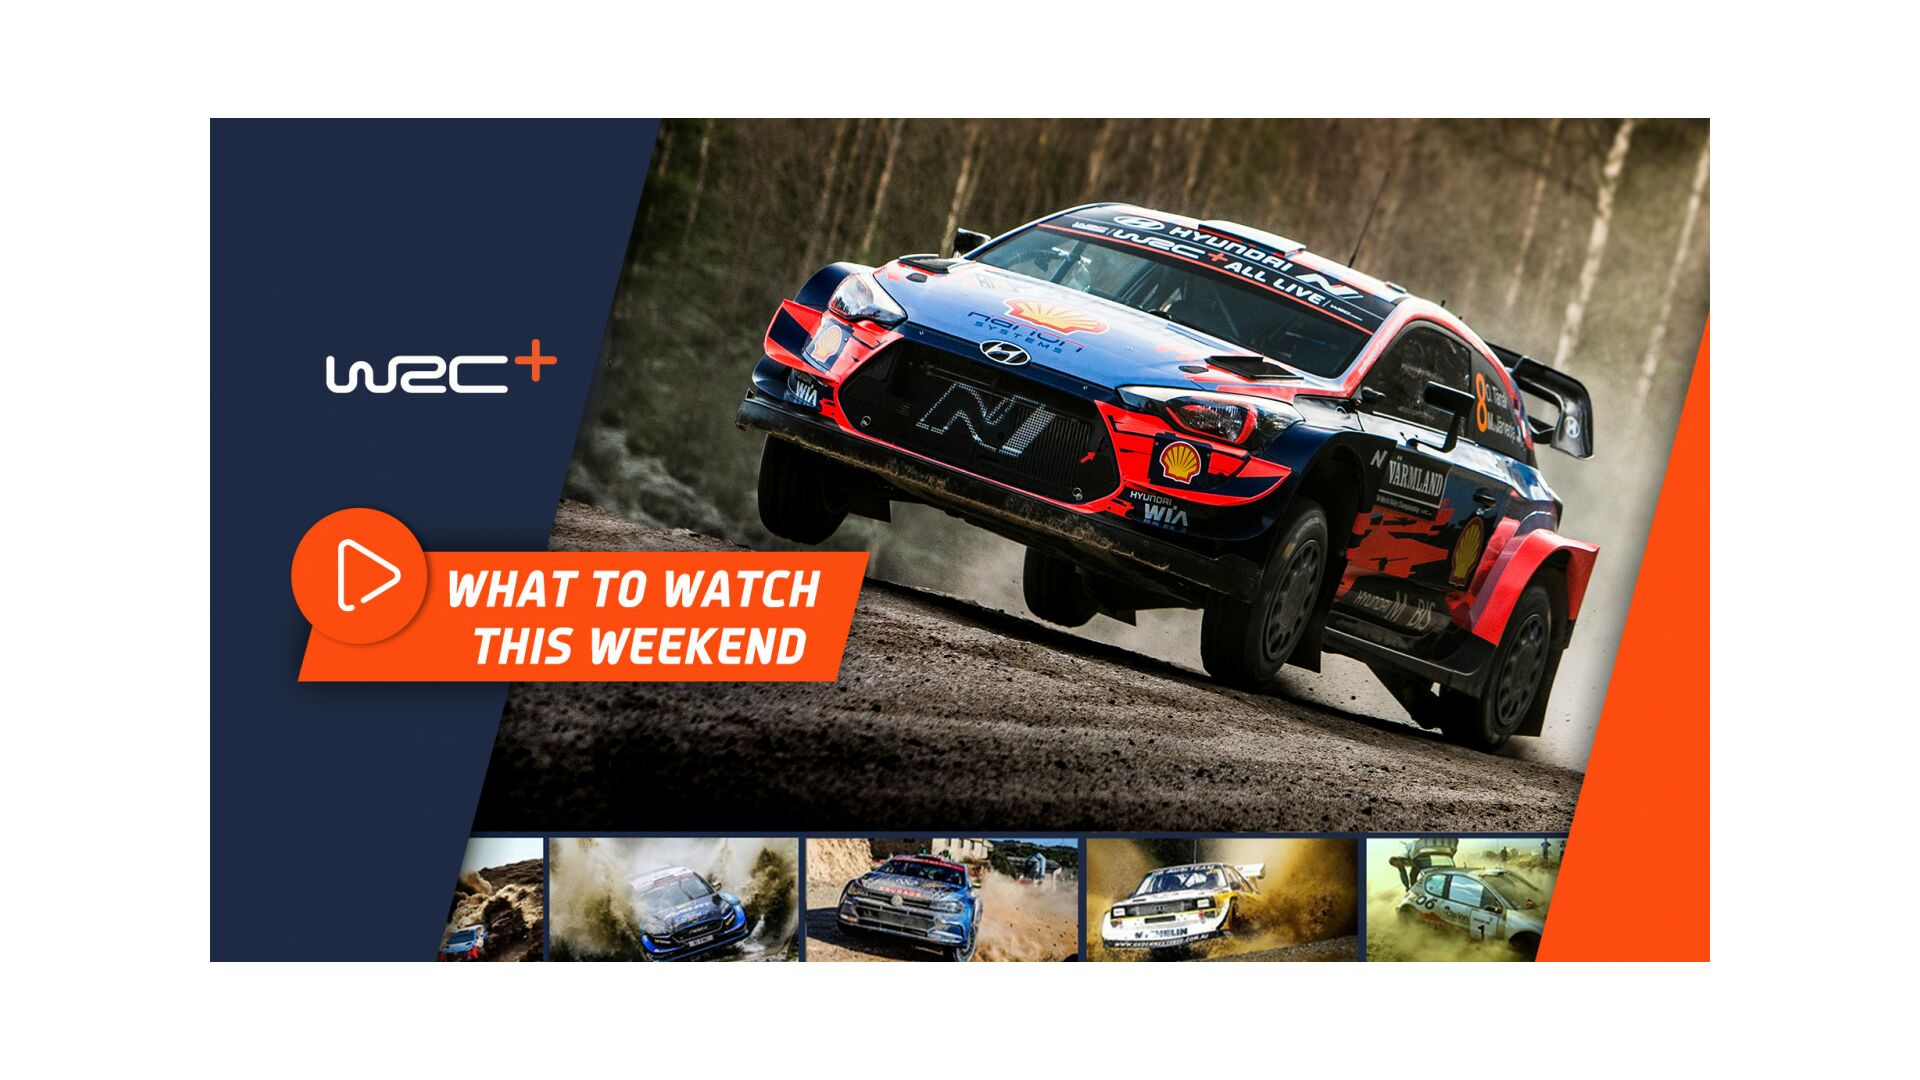 WHAT TO WATCH THIS WEEKEND